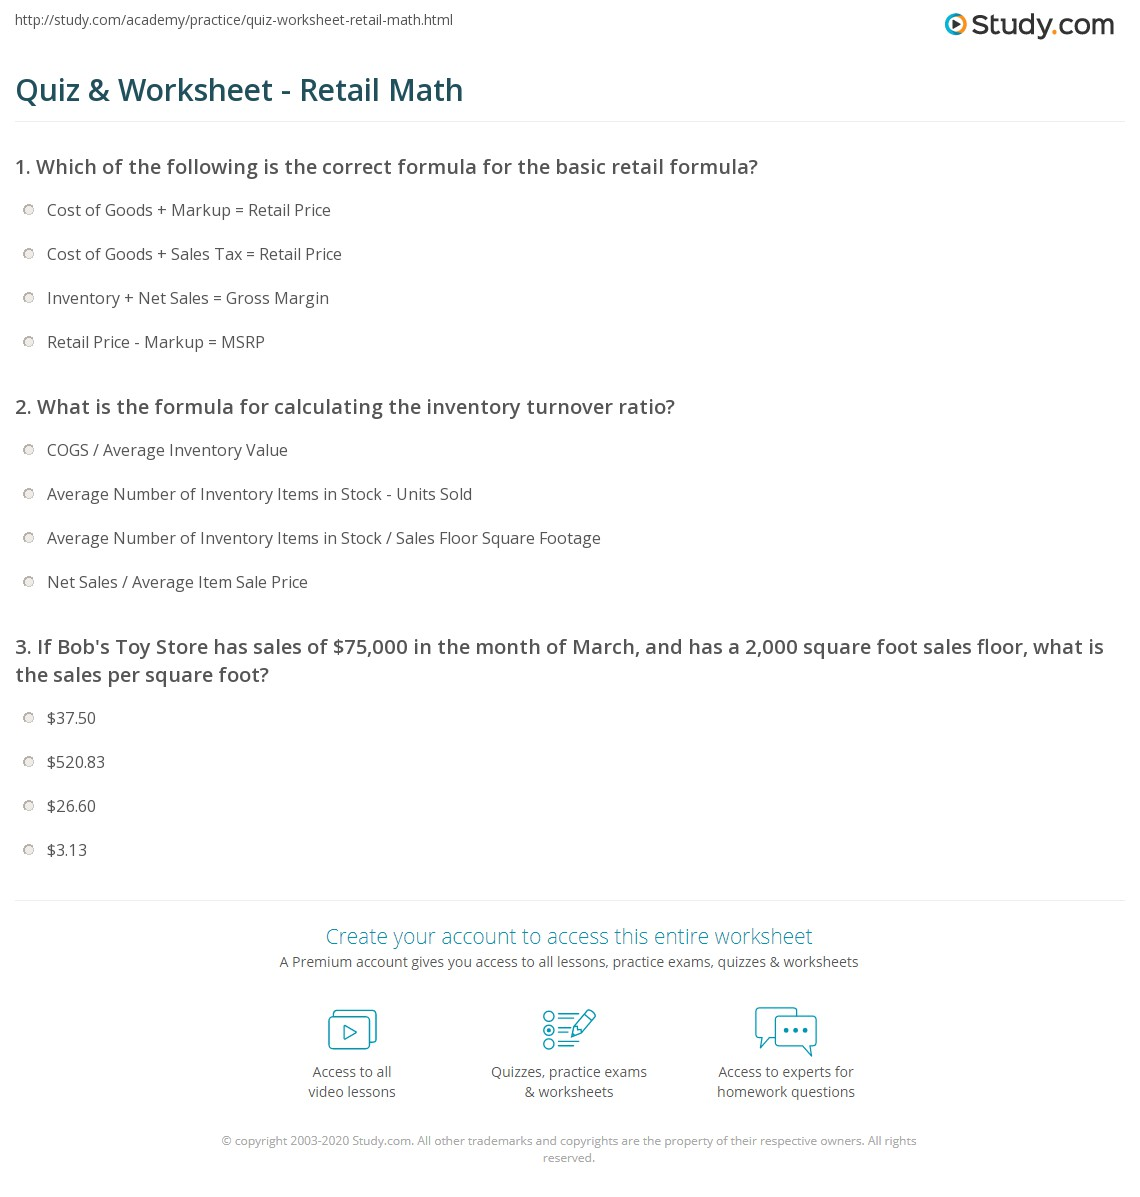 math worksheet : quiz  worksheet  retail math  study  : Maths Quiz Worksheets